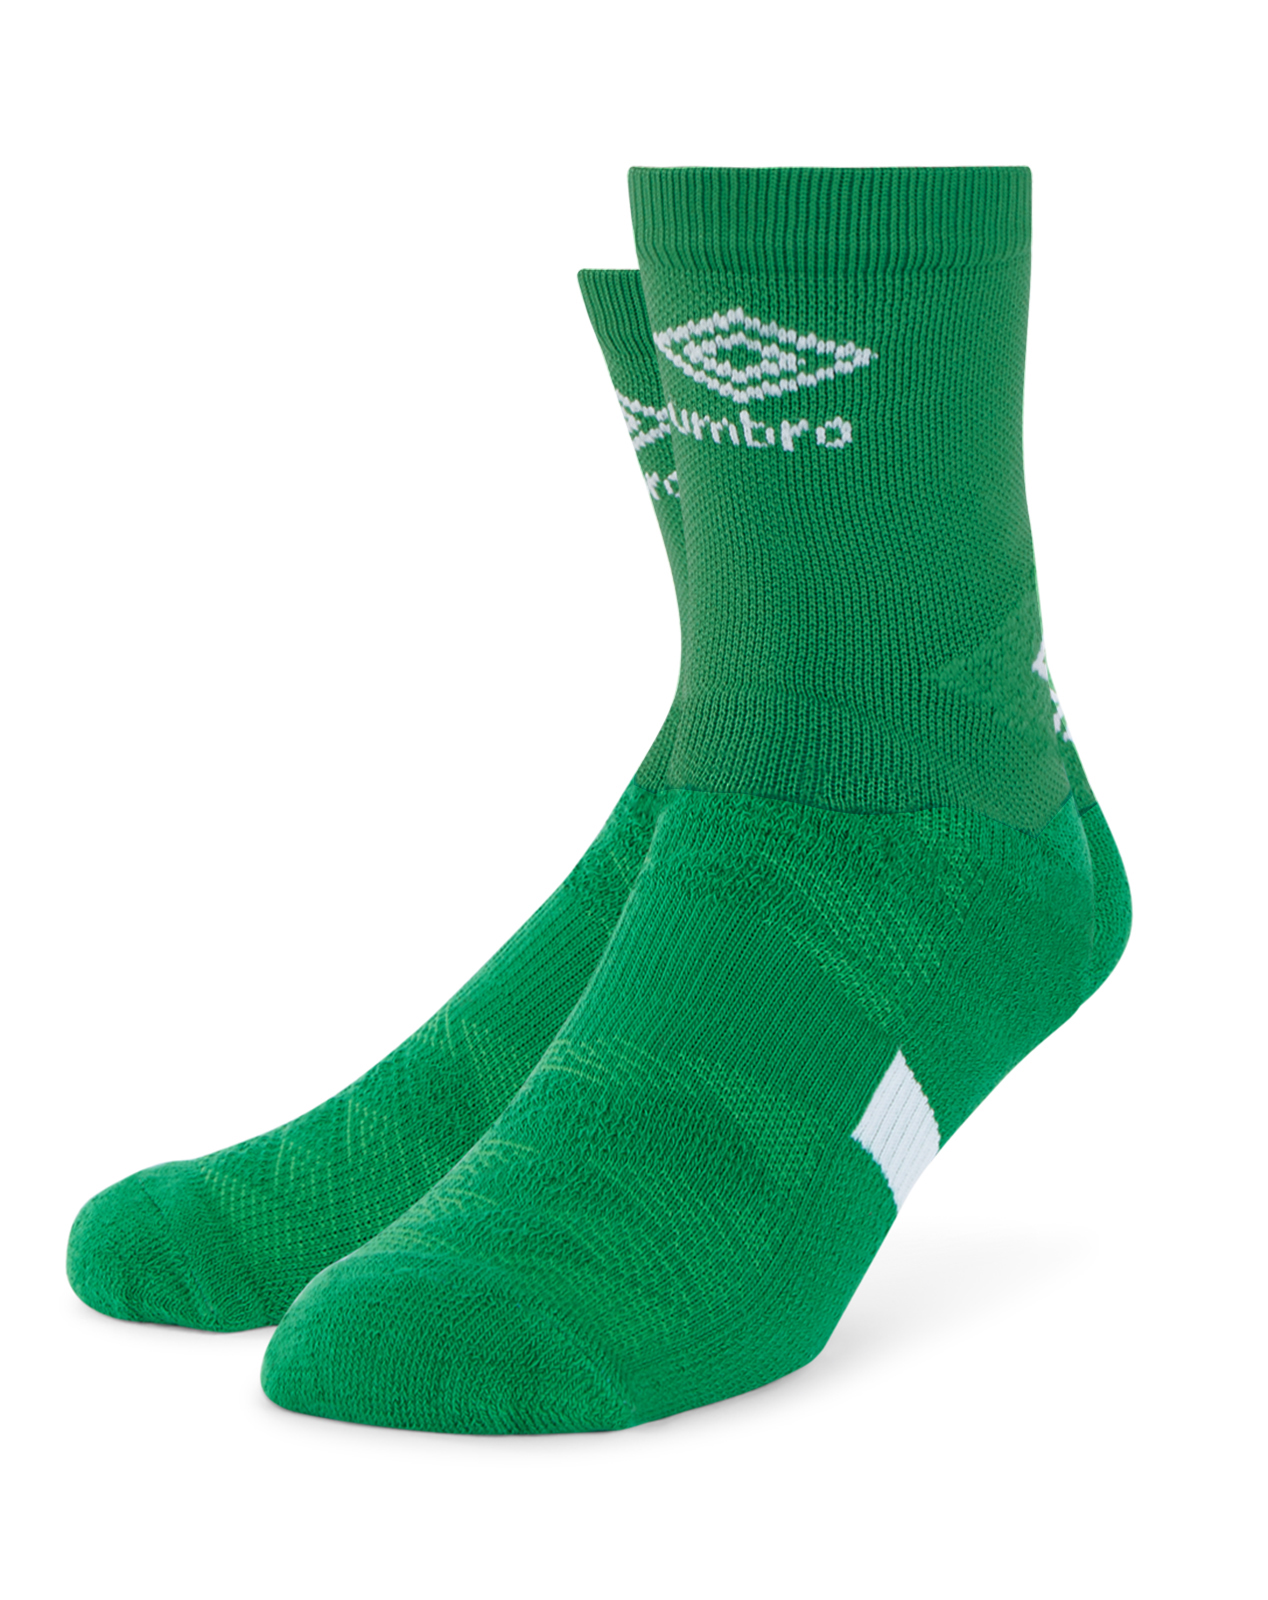 Umbro Protex Grip Sock - Emerald